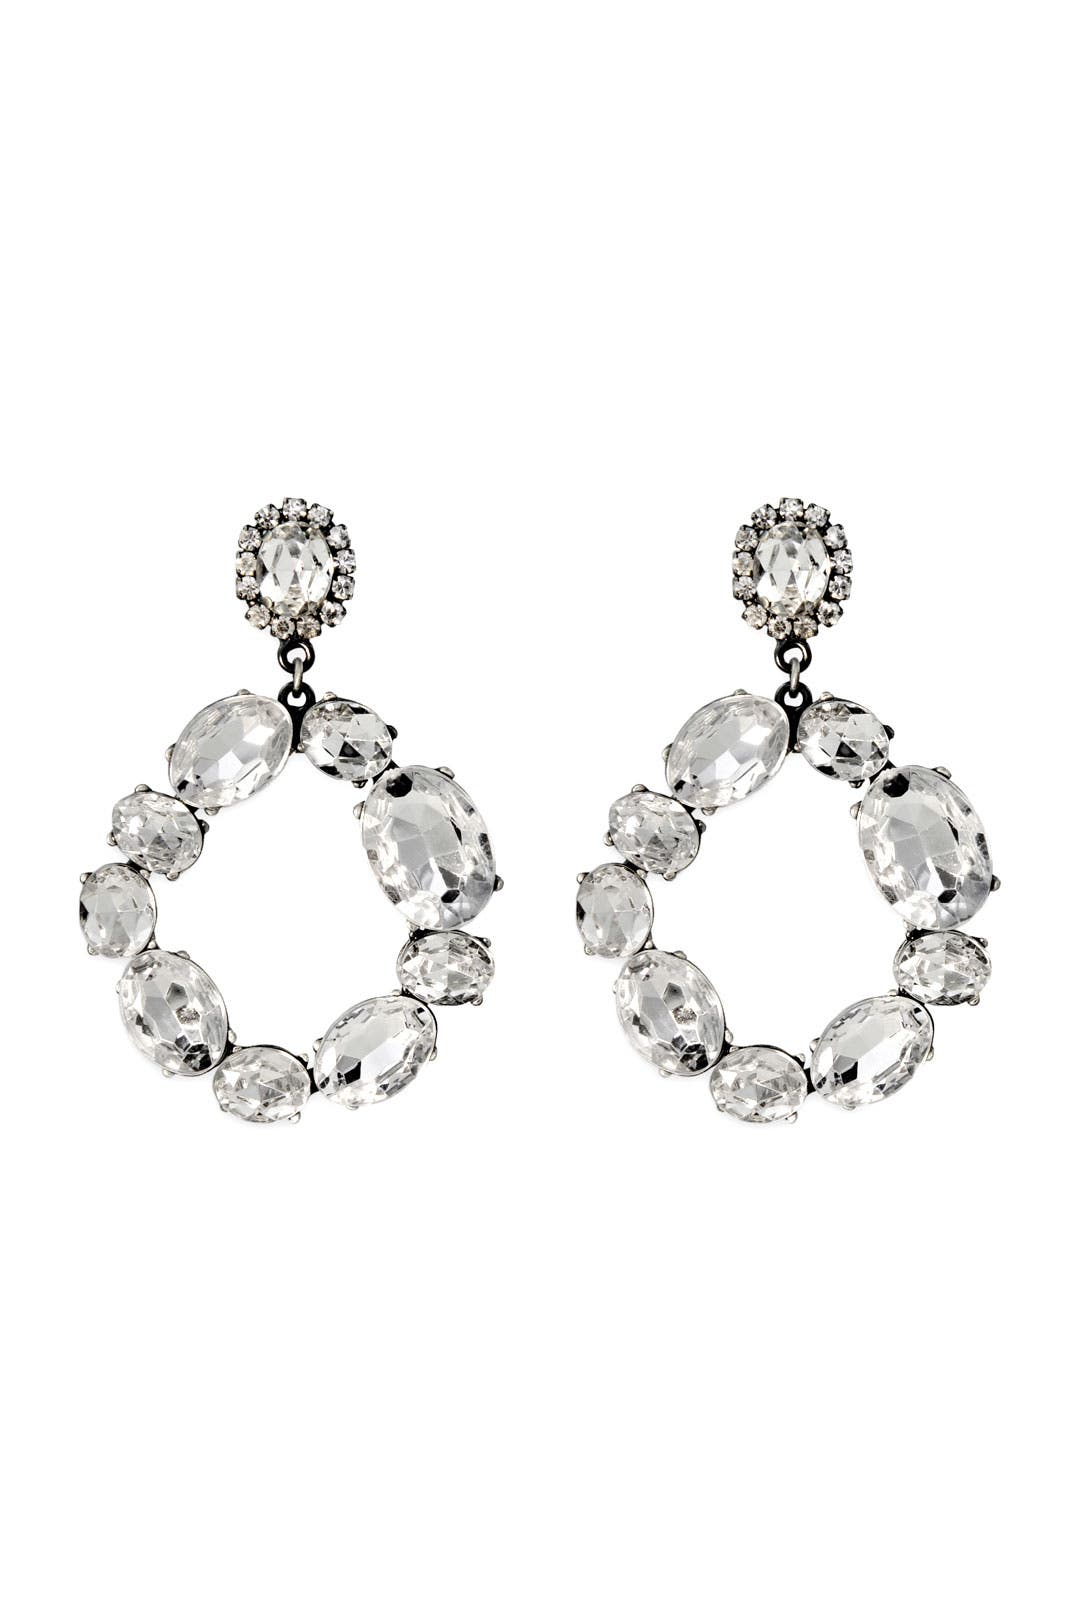 Nottoway Crystal Earrings by Lee Angel